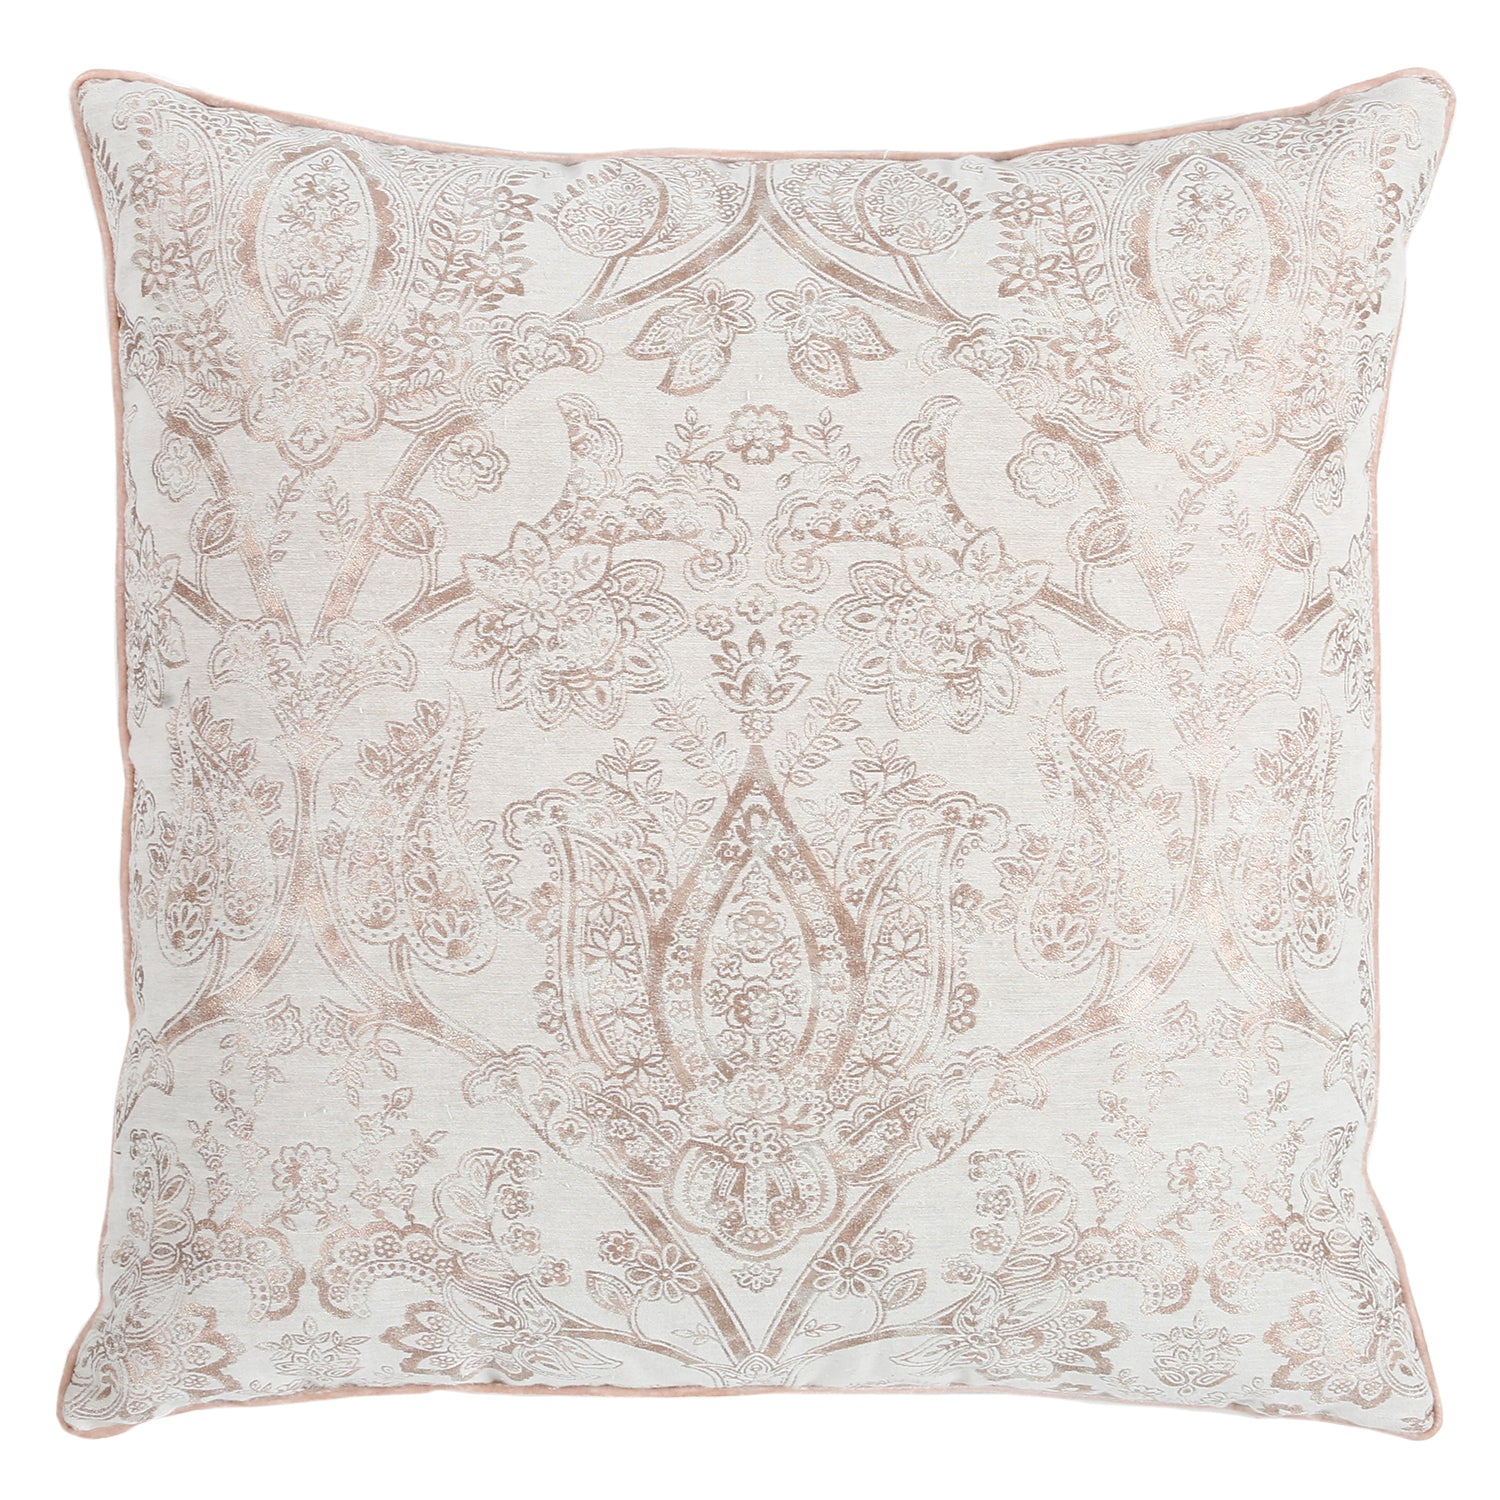 30% OFF Pink Damask With Velvet Trim Pillow